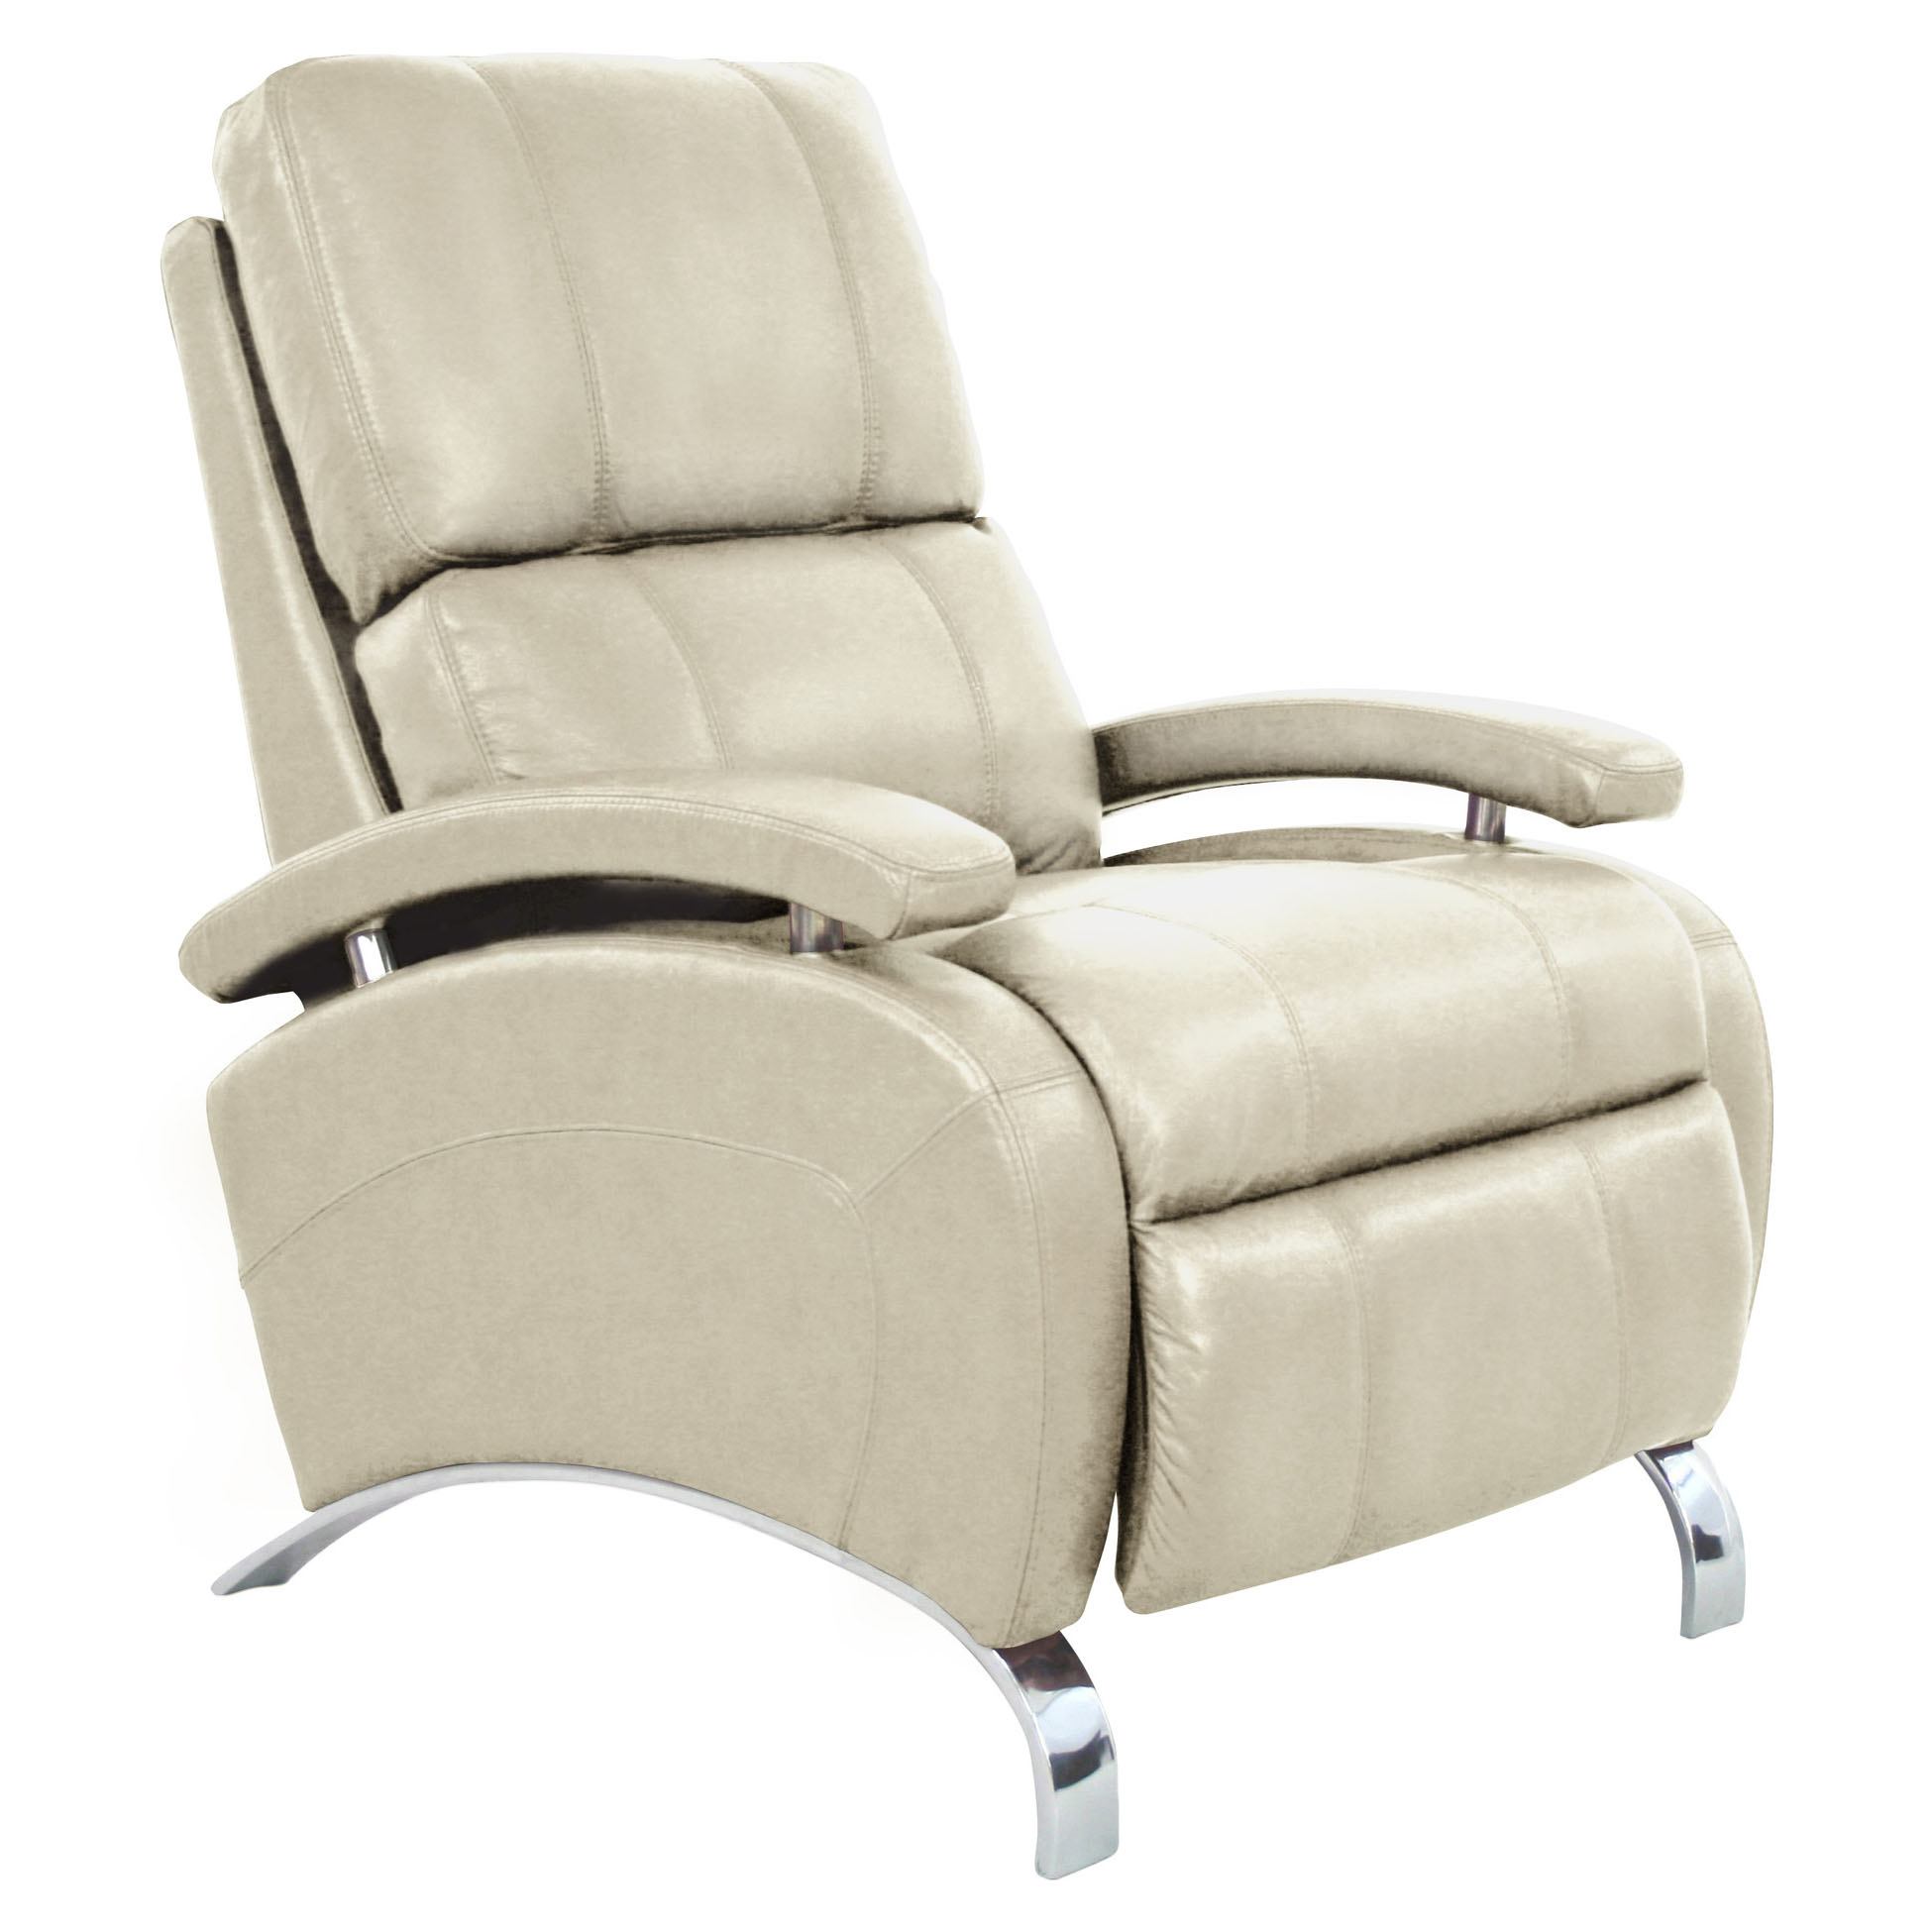 Barcalounger Oracle II Recliner Chair